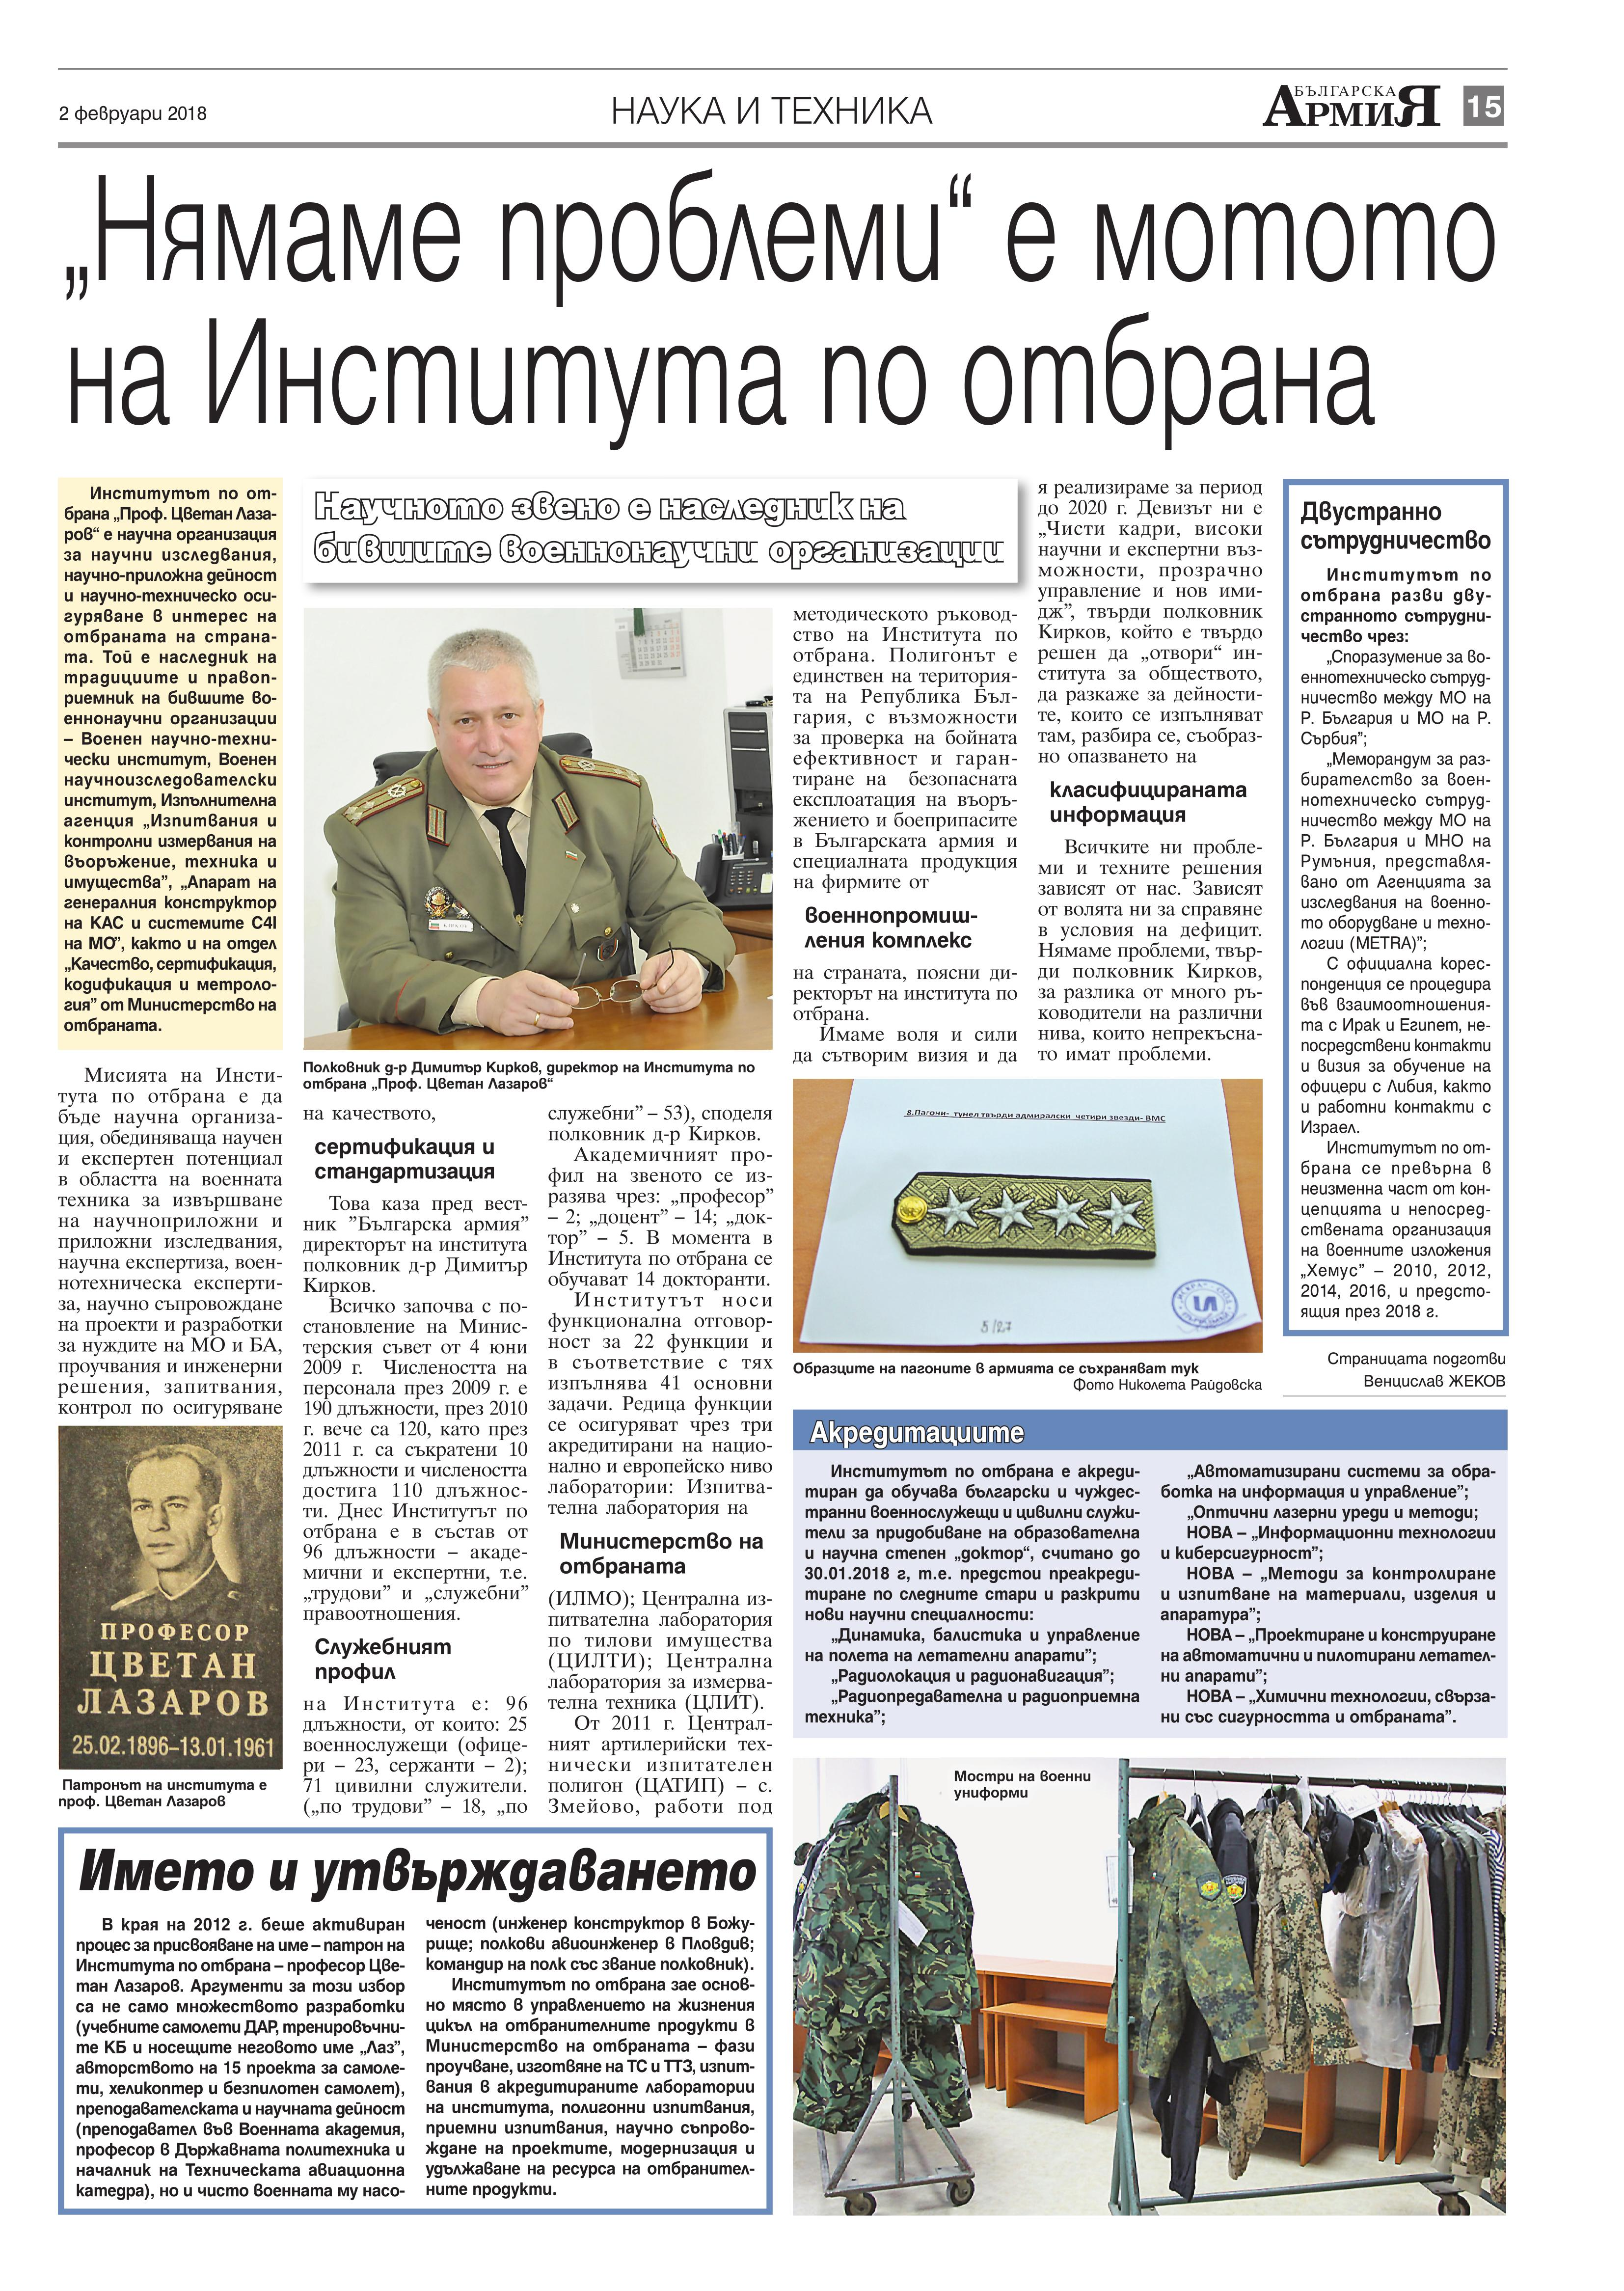 https://armymedia.bg/wp-content/uploads/2015/06/15.page1_-38.jpg